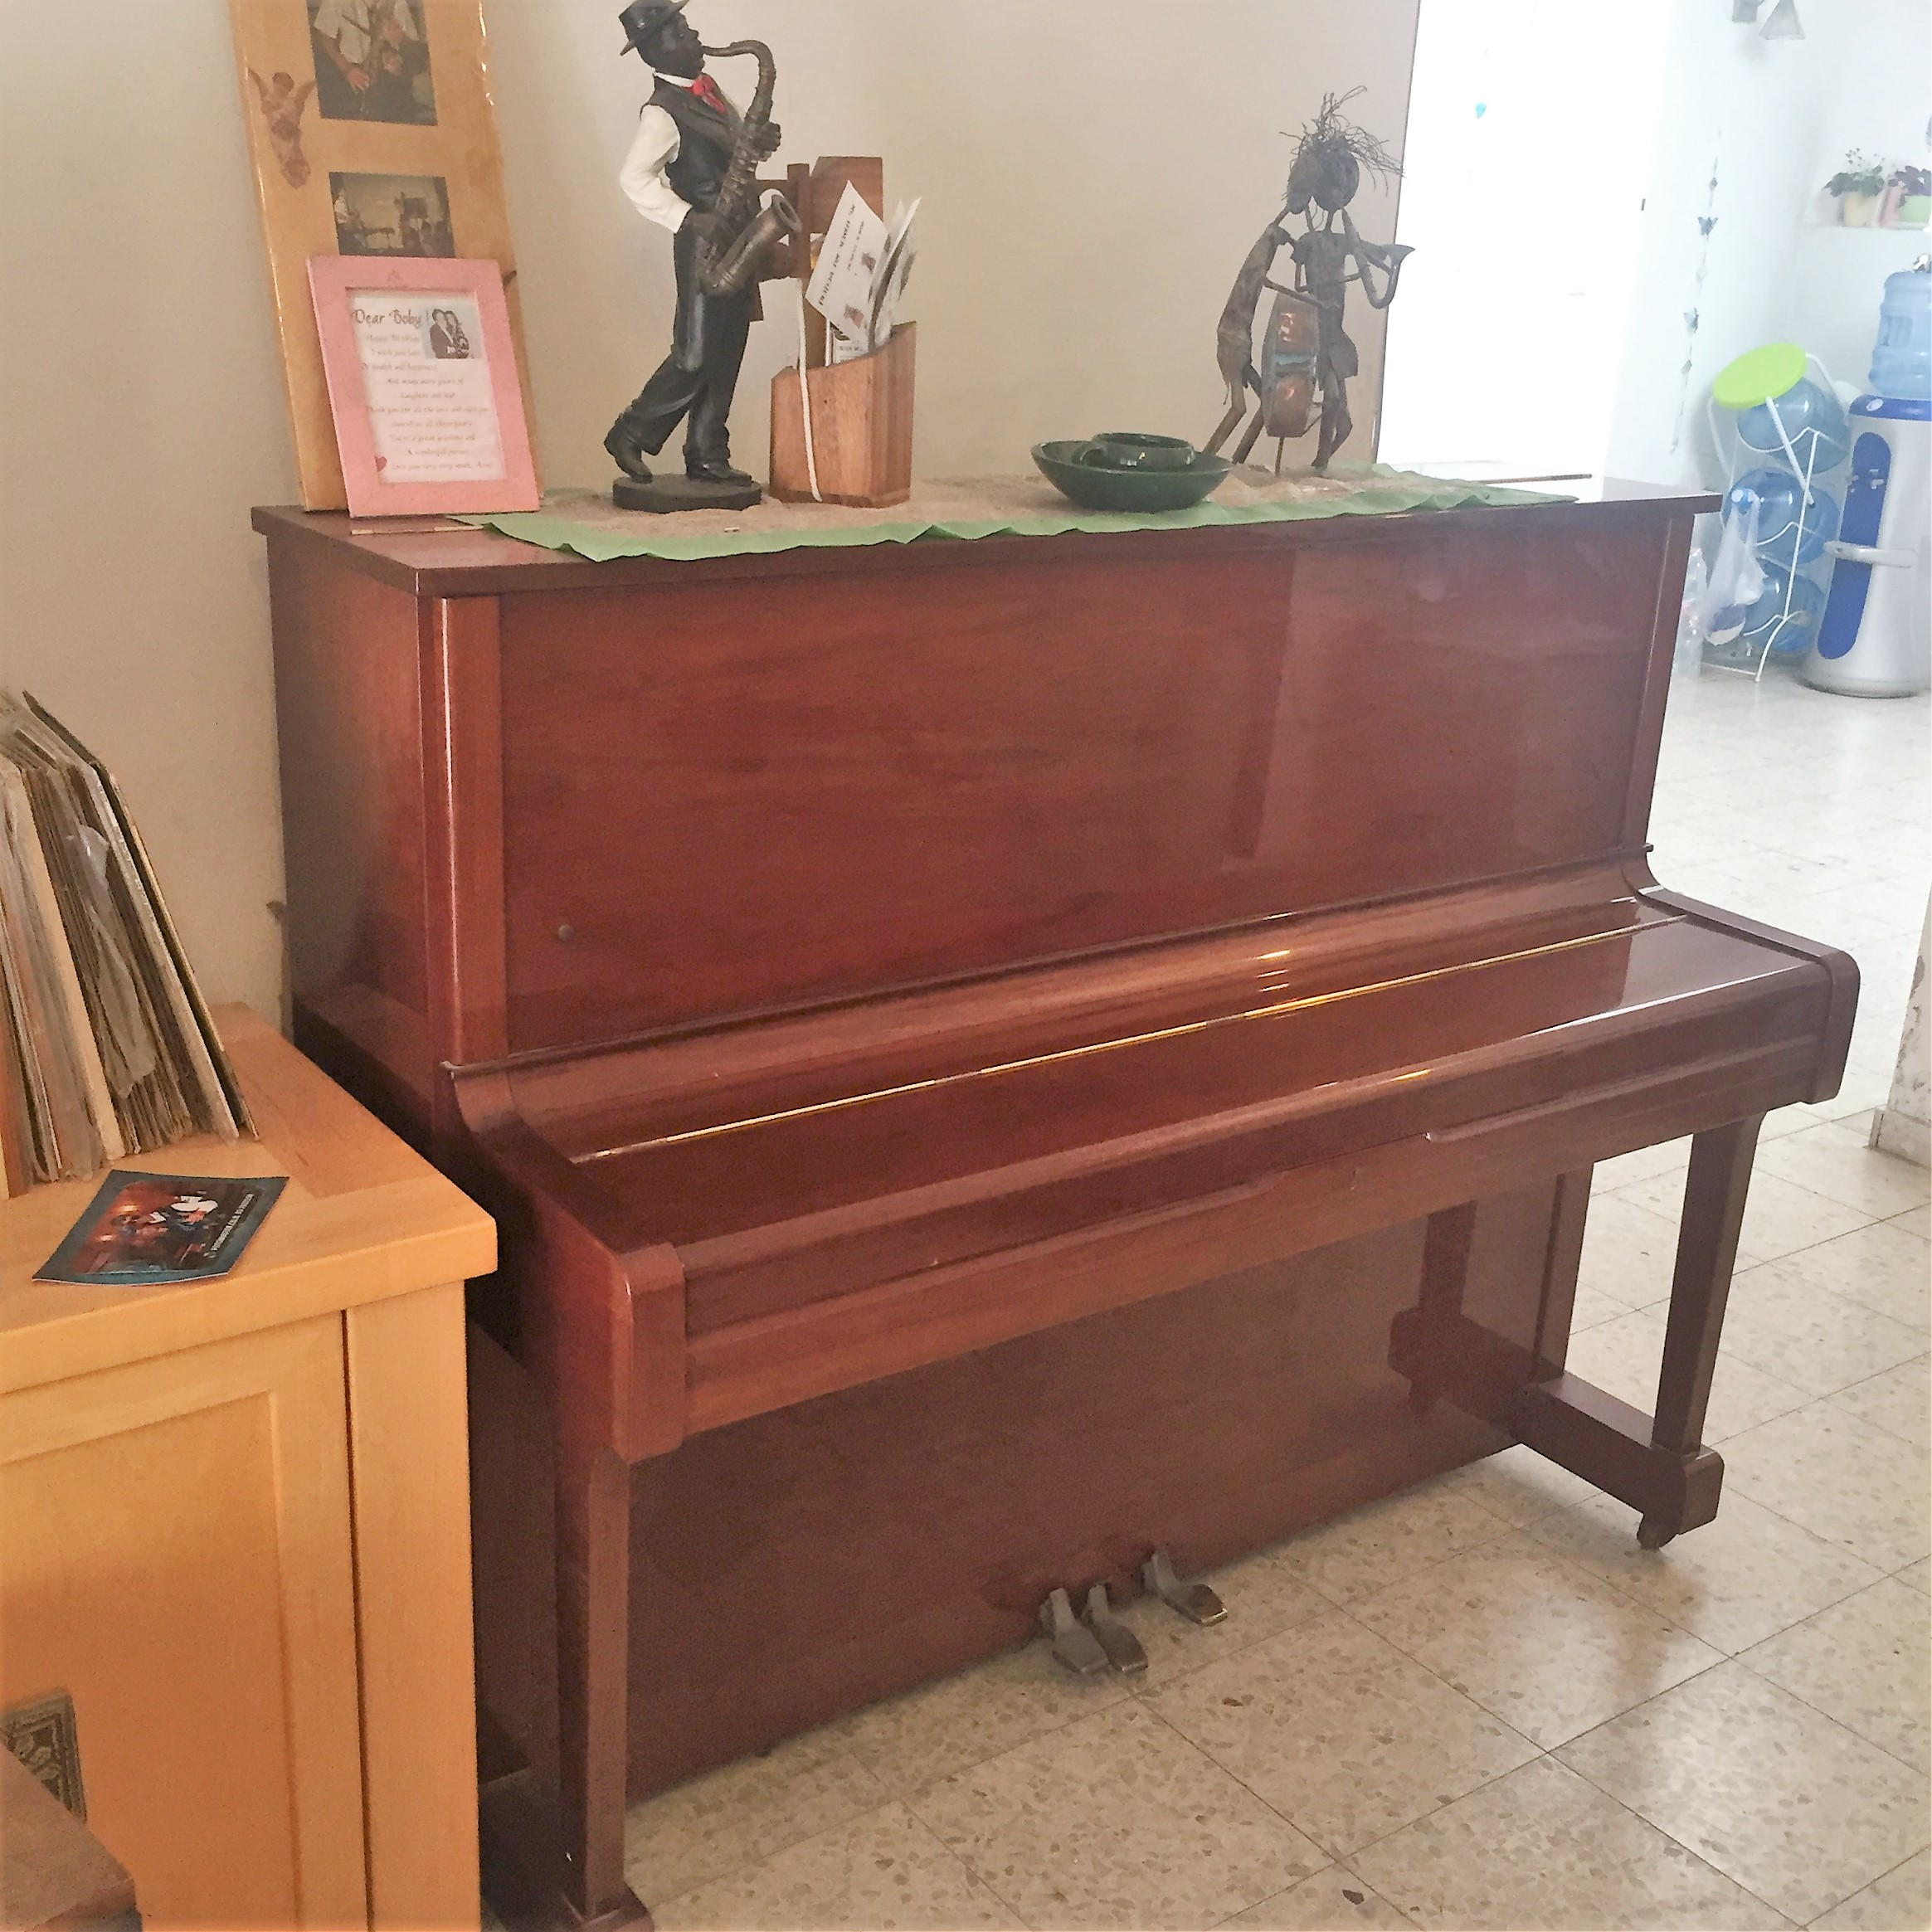 Artwork from the book - Mel's Ten Tips on Buying a Piano by Mel Rosenberg - מל רוזנברג - Ourboox.com